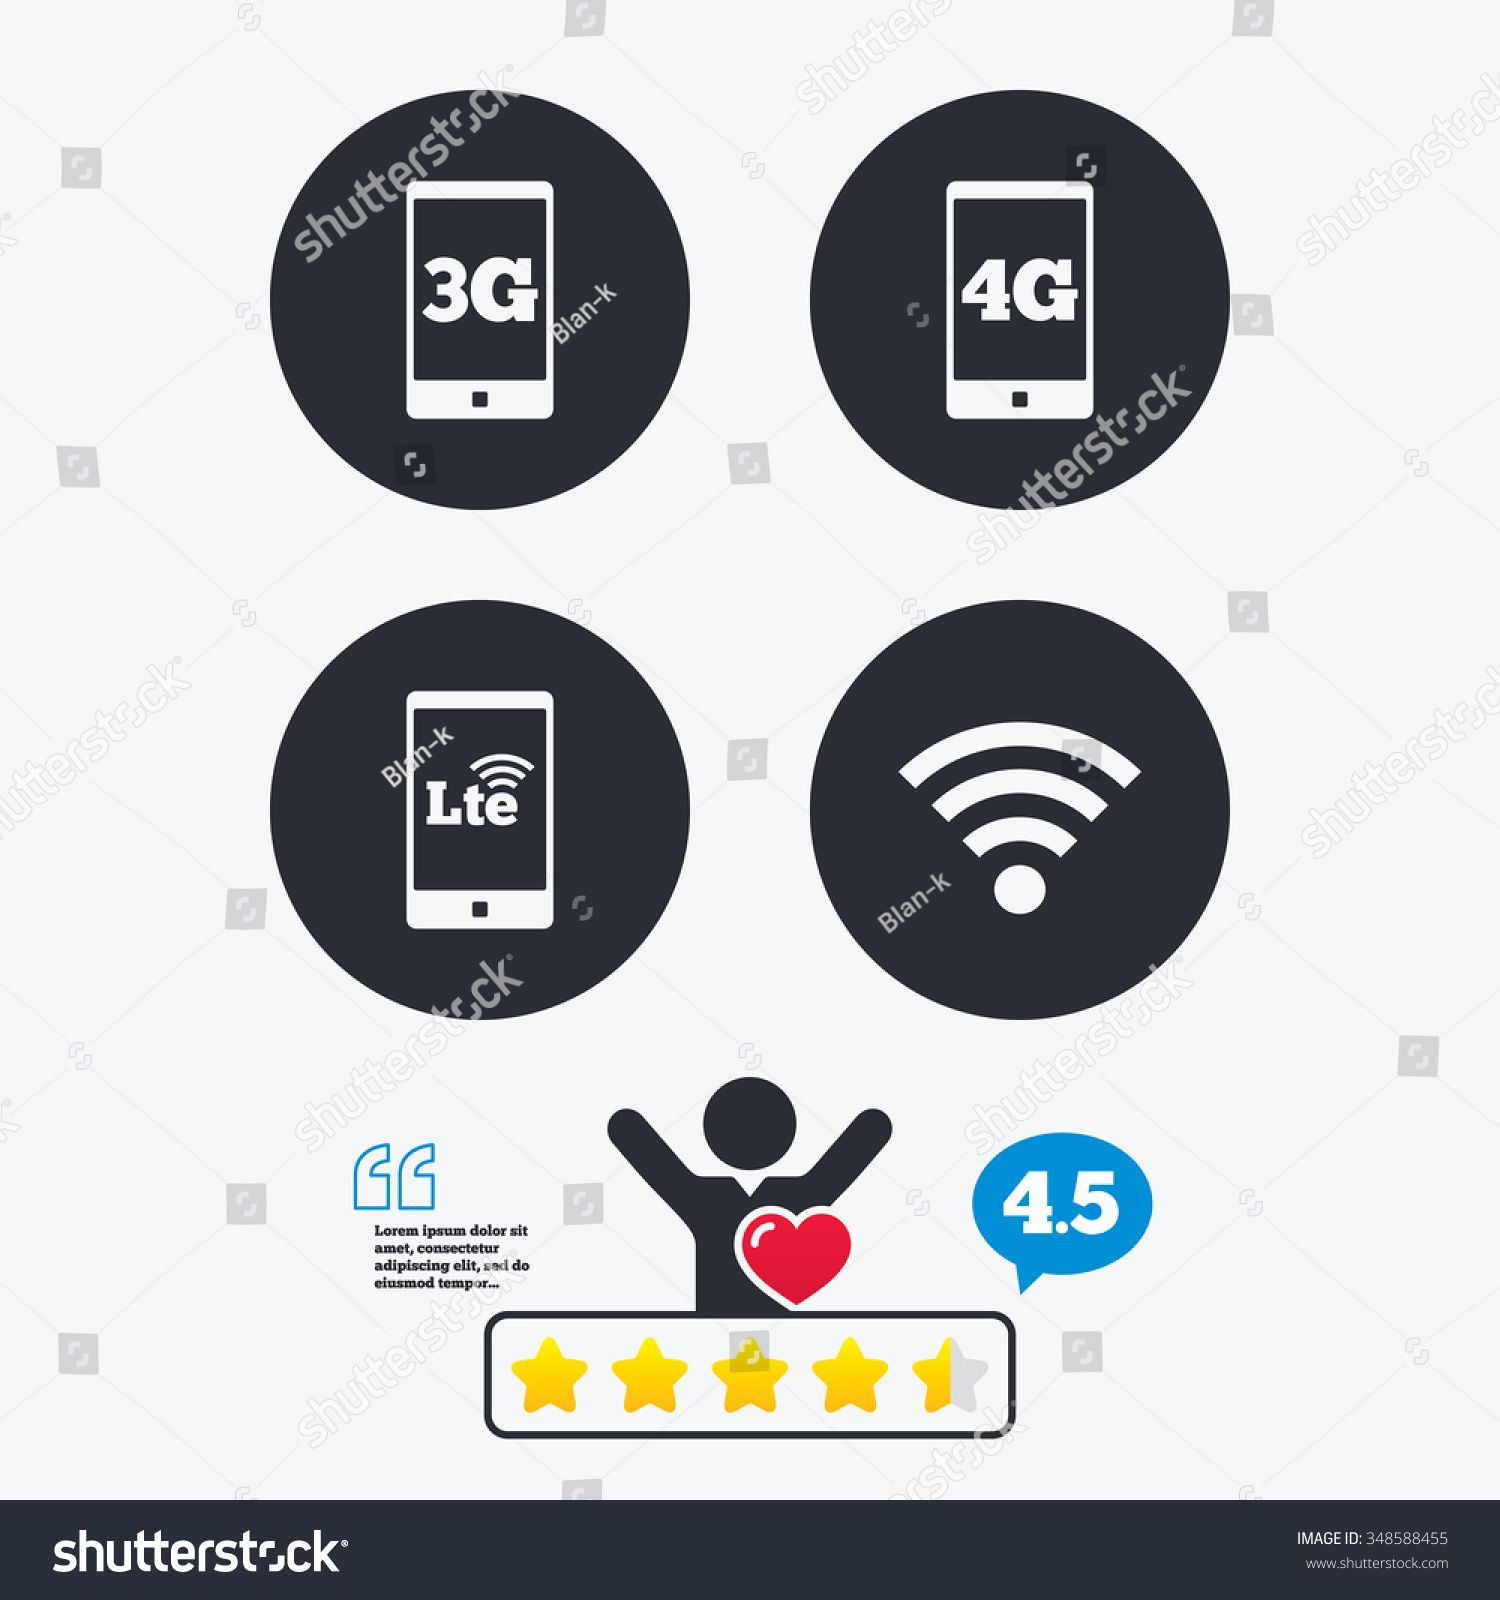 Mobile Telecommunications Icons 3g 4g And Lte Technology Symbols Wi Fi Wireless And Long Term Evolution Signs Star Vot Ad In 2020 Psd Templates Templates Symbols